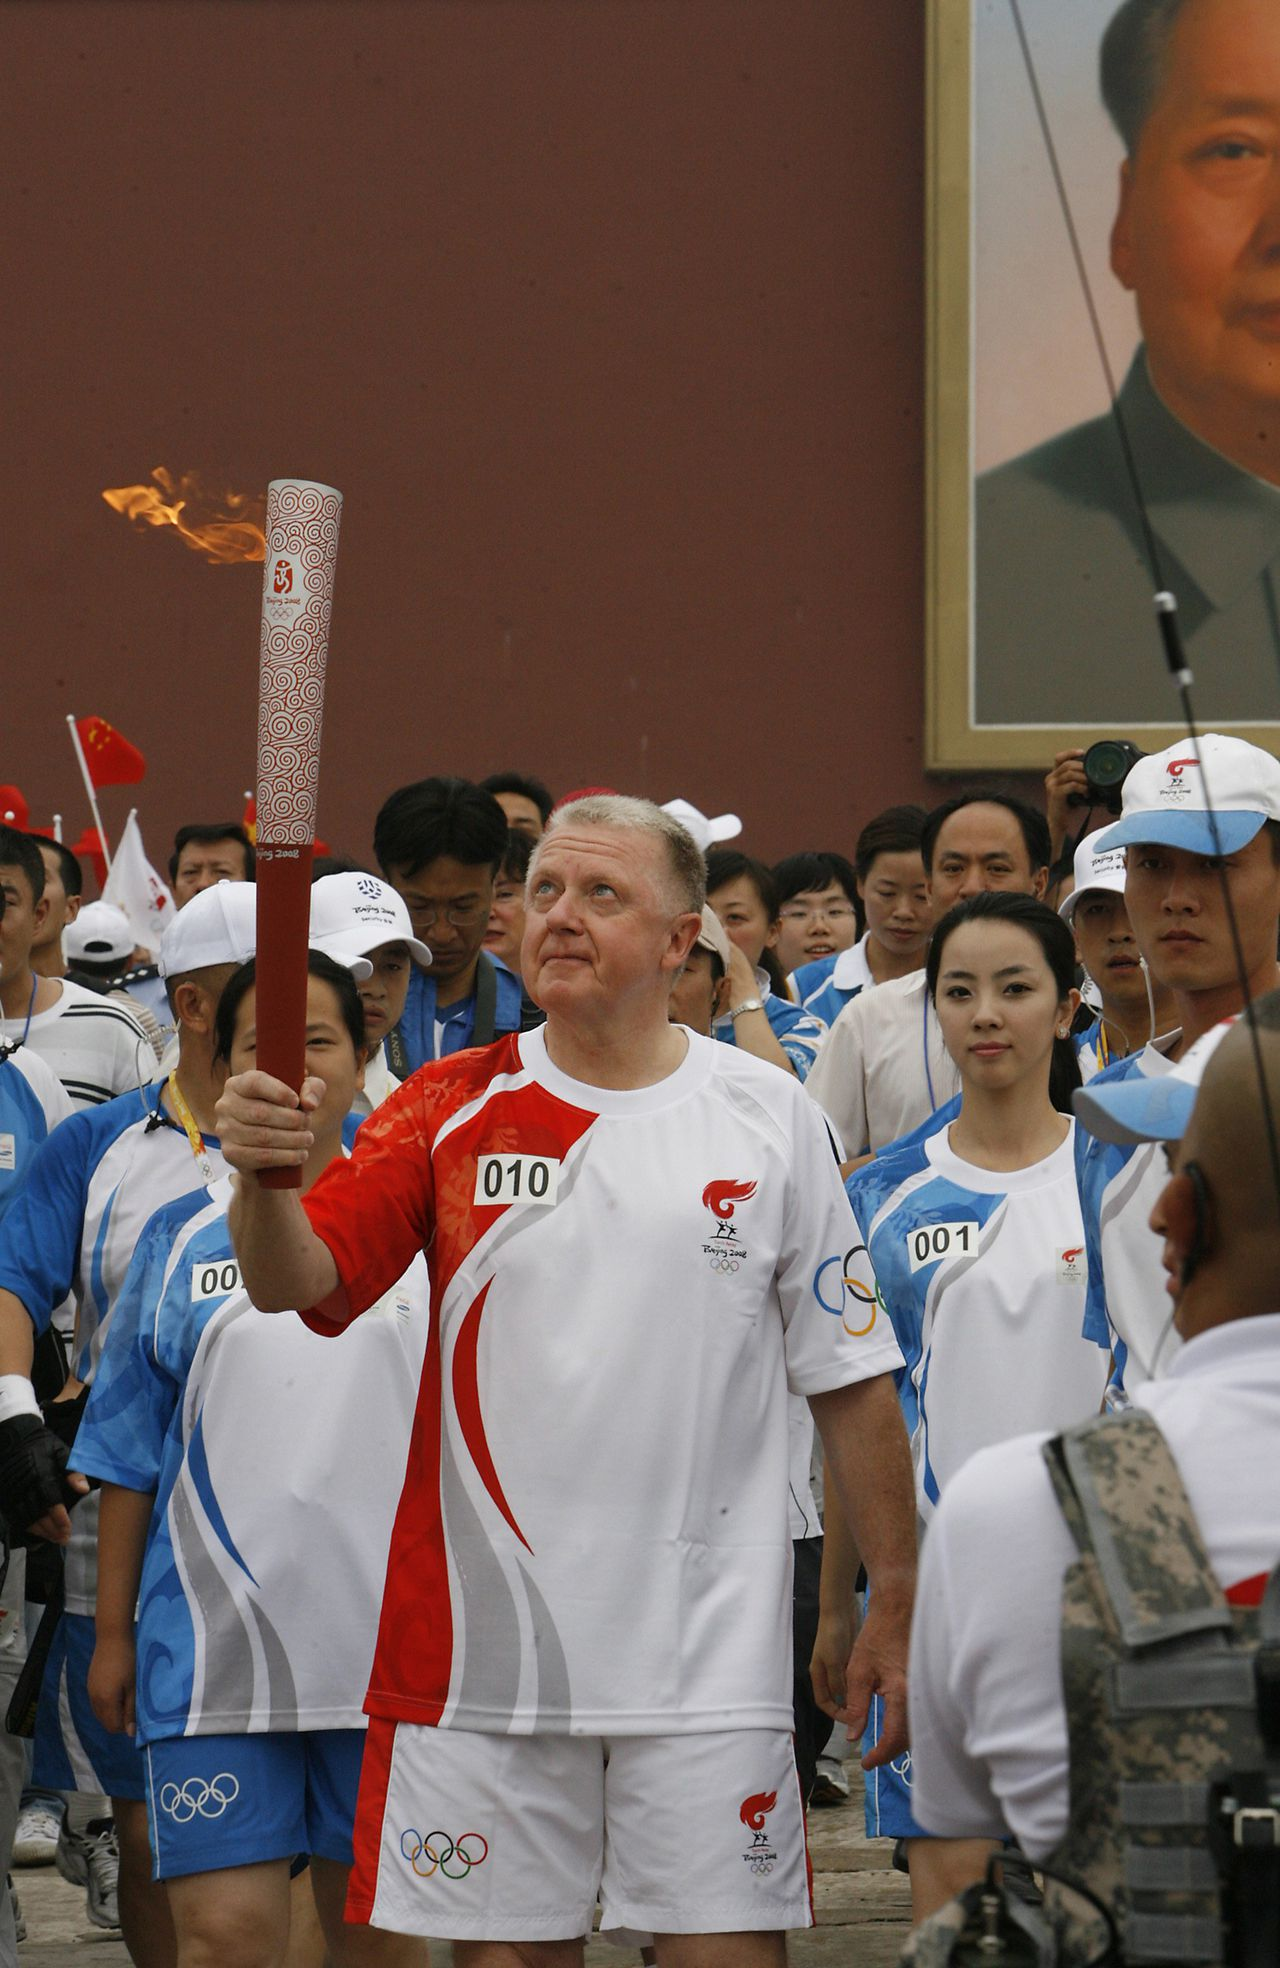 Hein Verbruggen met de olympische fakkel, vlak voor het begin van de Olympische Spelen. Foto Reuters Hein Verbruggen, chairman of the IOC Coordination Commission for the Beijing 2008 Olympic Games carries the torch as he runs through the Tiananmen Gate during the torch relay in Beijing August 6, 2008. REUTERS/Claro Cortes IV (CHINA)